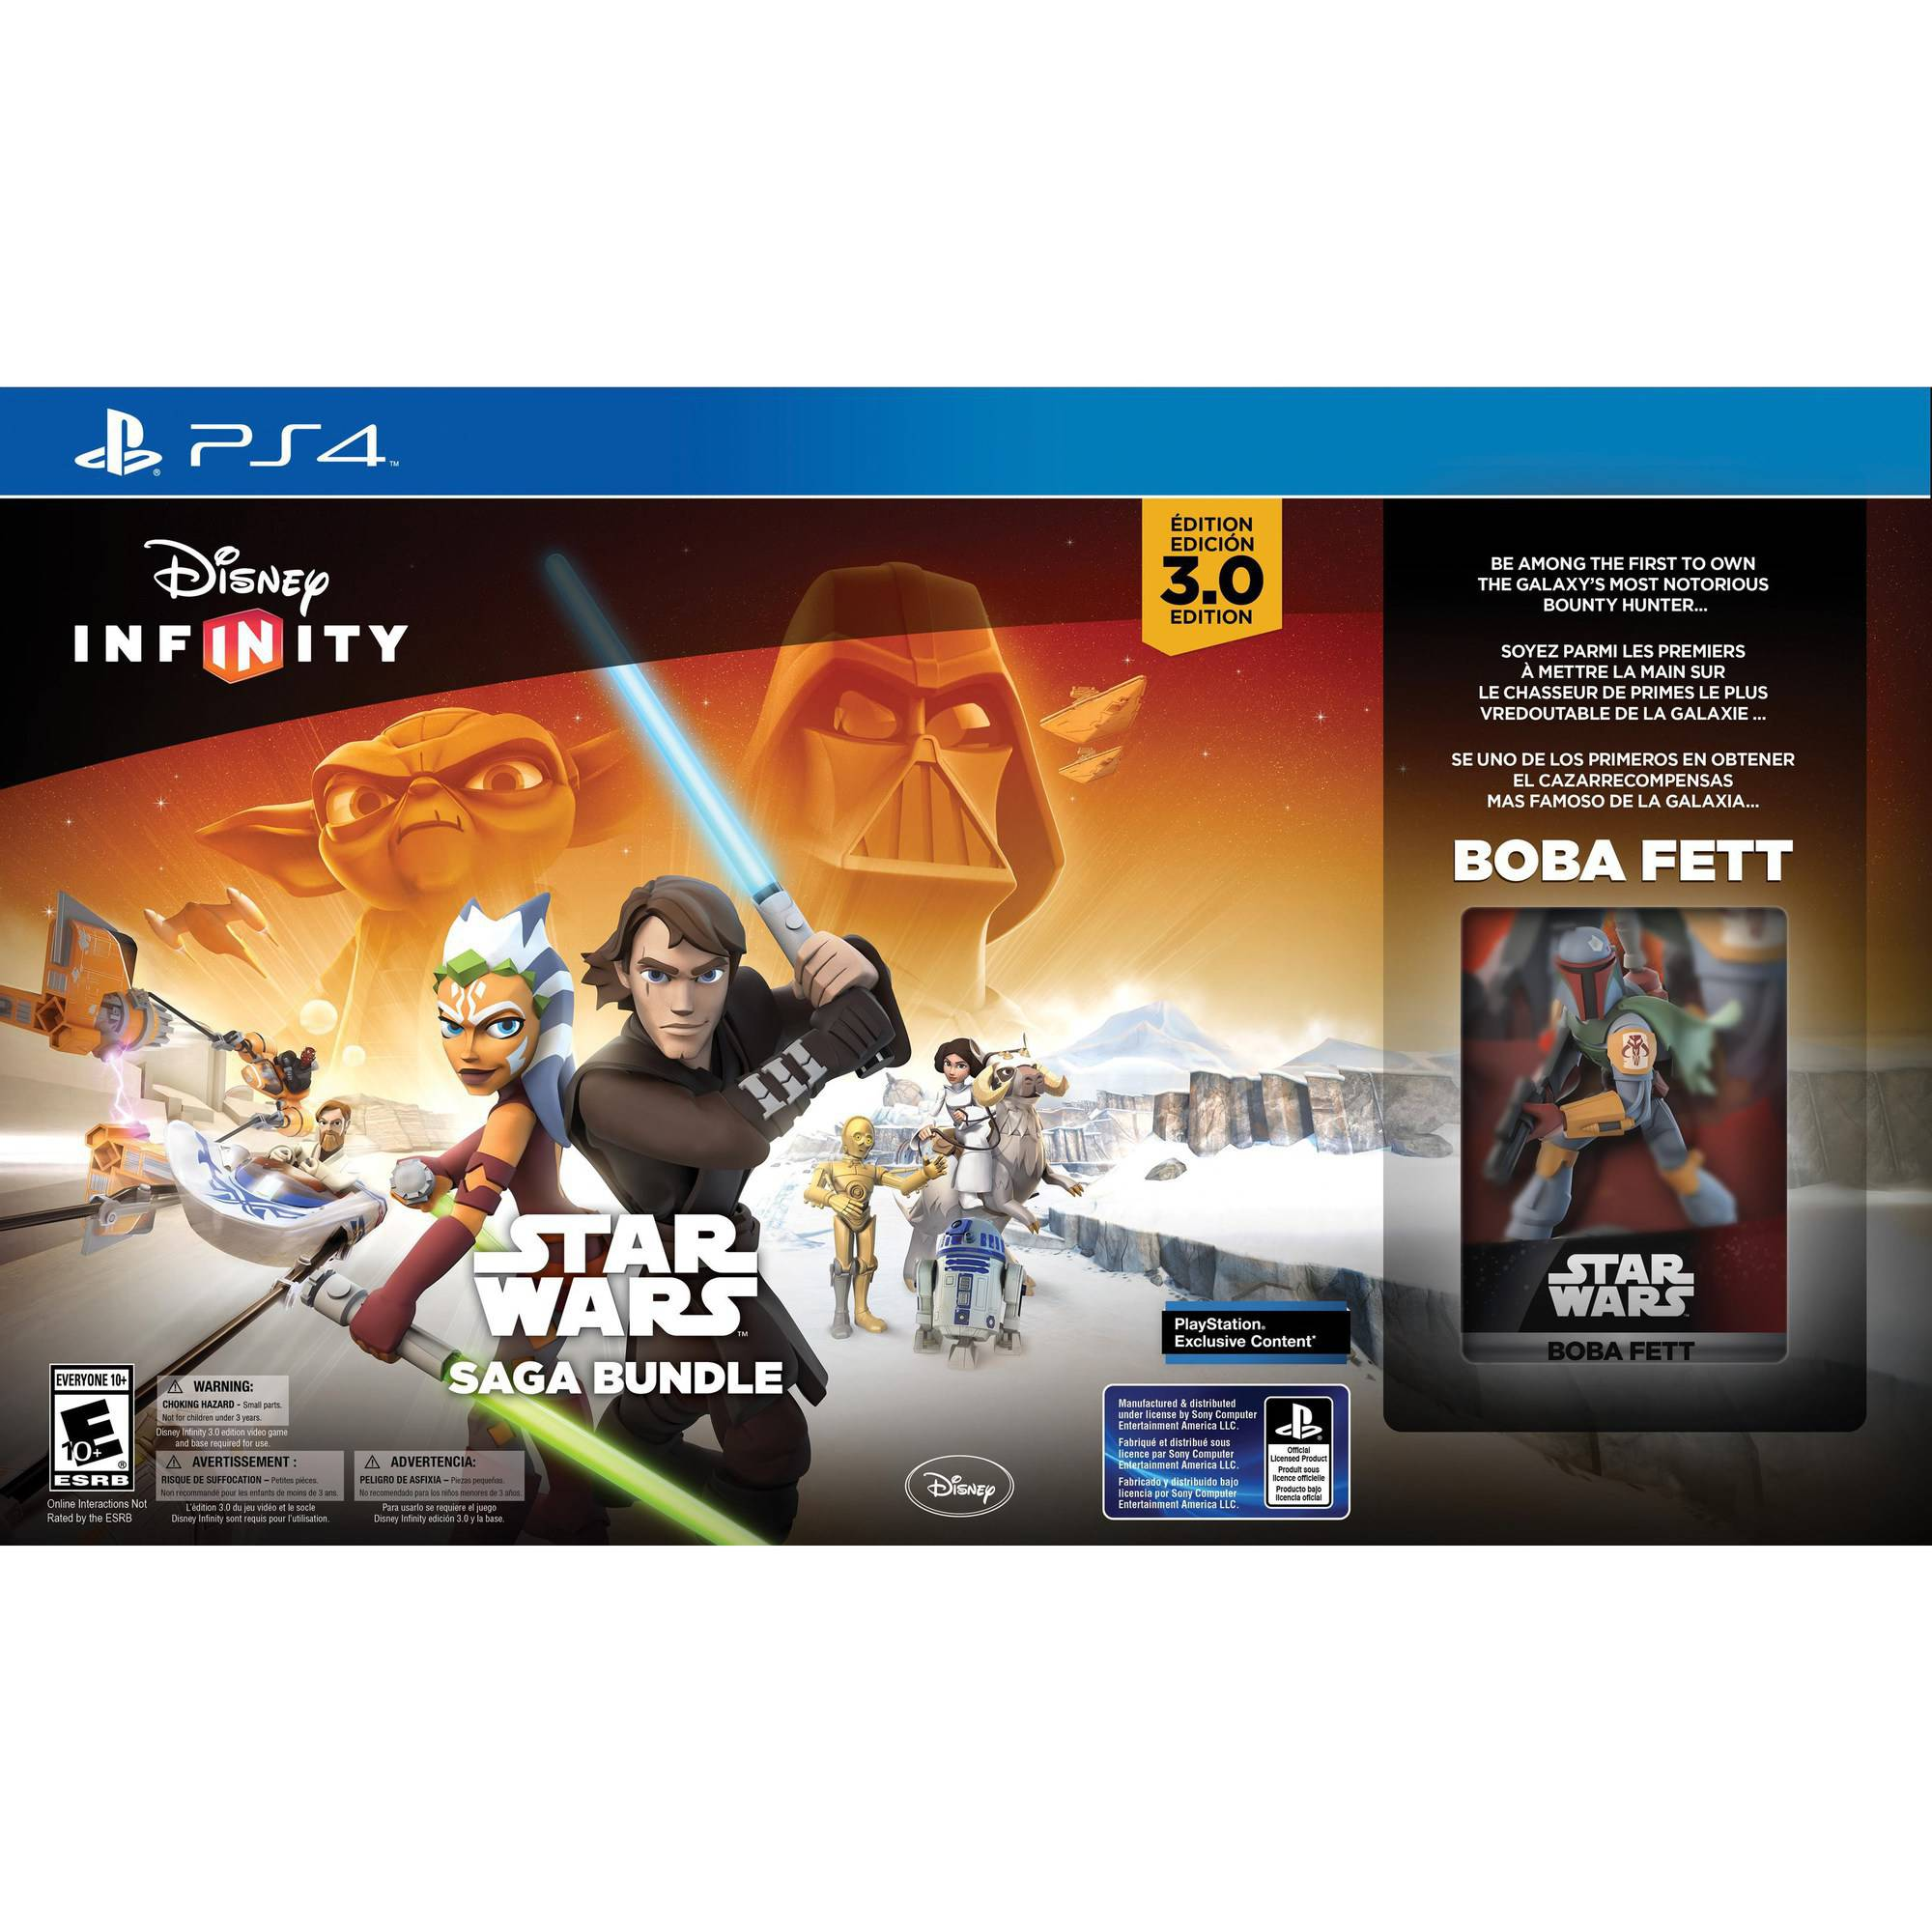 Disney Infinity 3.0 Star Wars Saga Bundle (PS4)